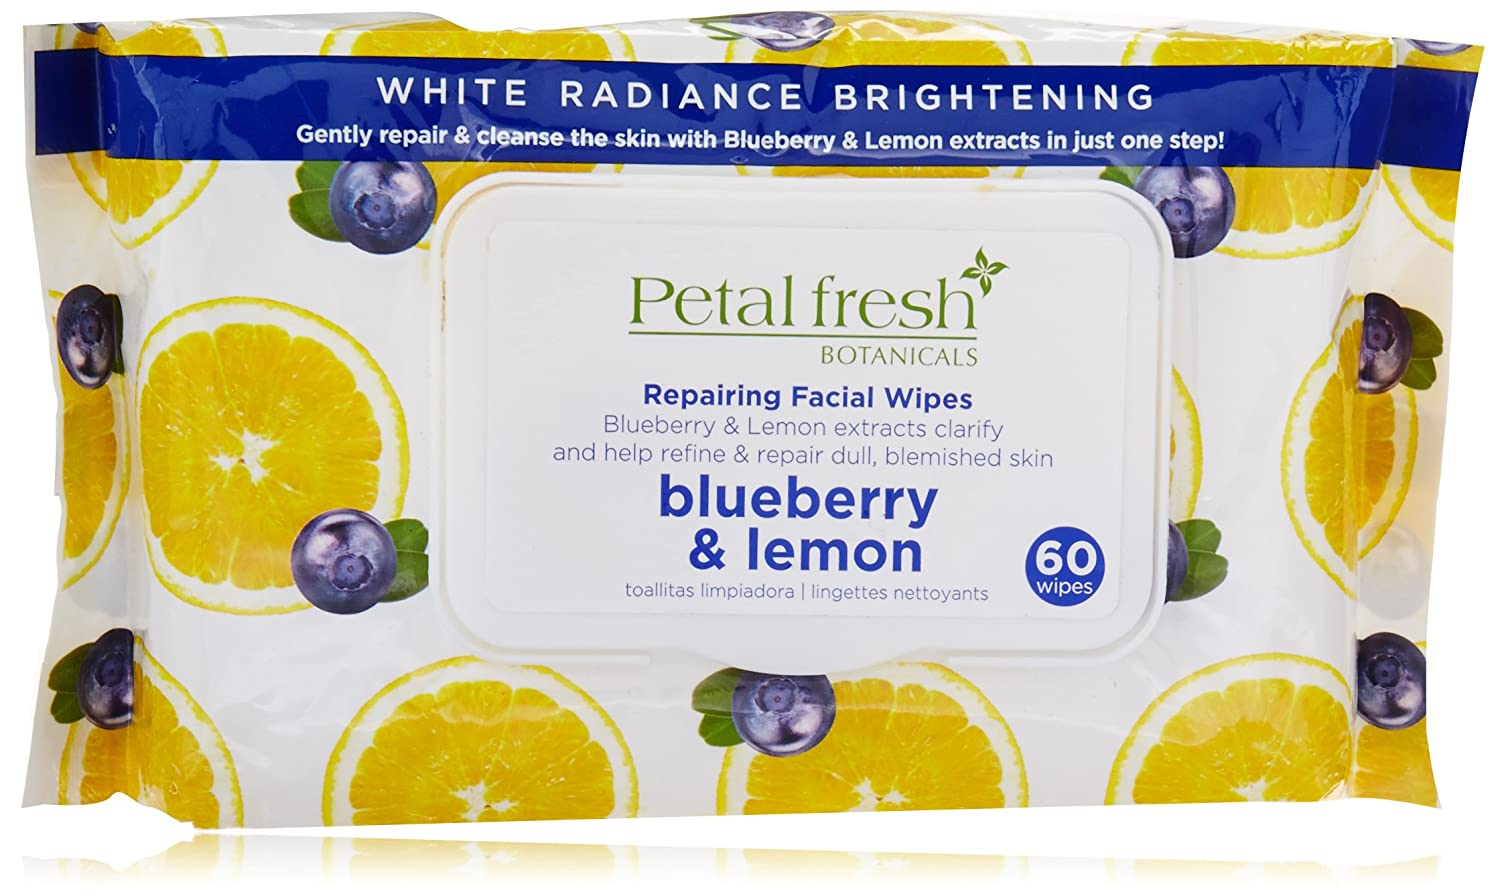 Petal Fresh Botanicals White Radiance Blueberry and Lemon Exfoliating Facial Cleansing Wipes, 60 Count Bio Creative Lab